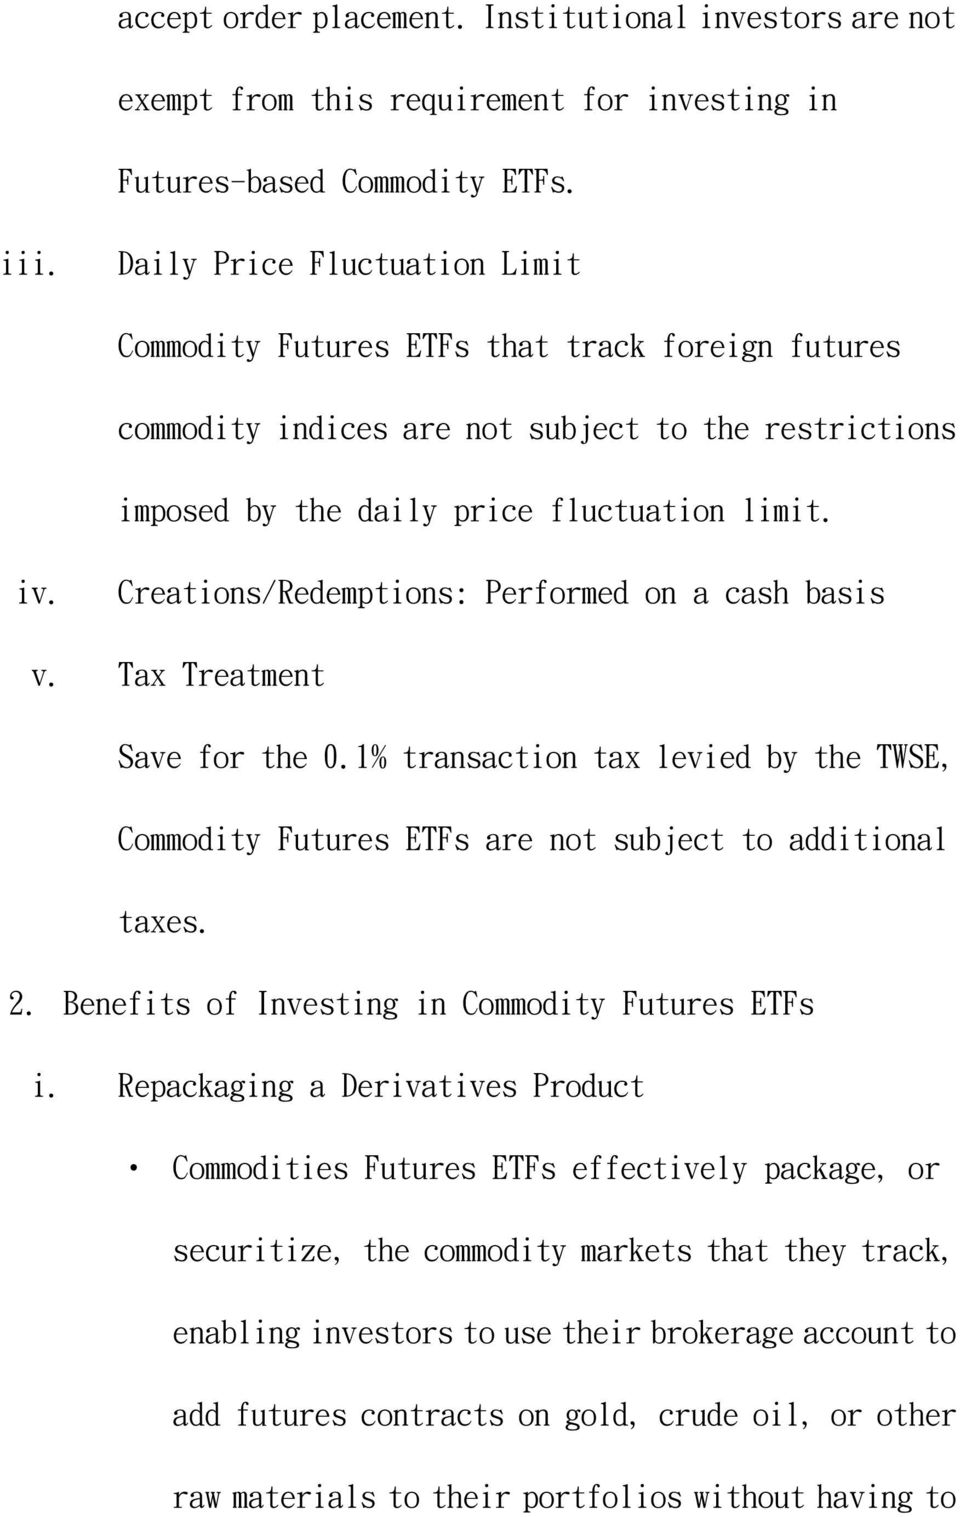 Creations/Redemptions: Performed on a cash basis v. Tax Treatment Save for the 0.1% transaction tax levied by the TWSE, Commodity Futures ETFs are not subject to additional taxes. 2.